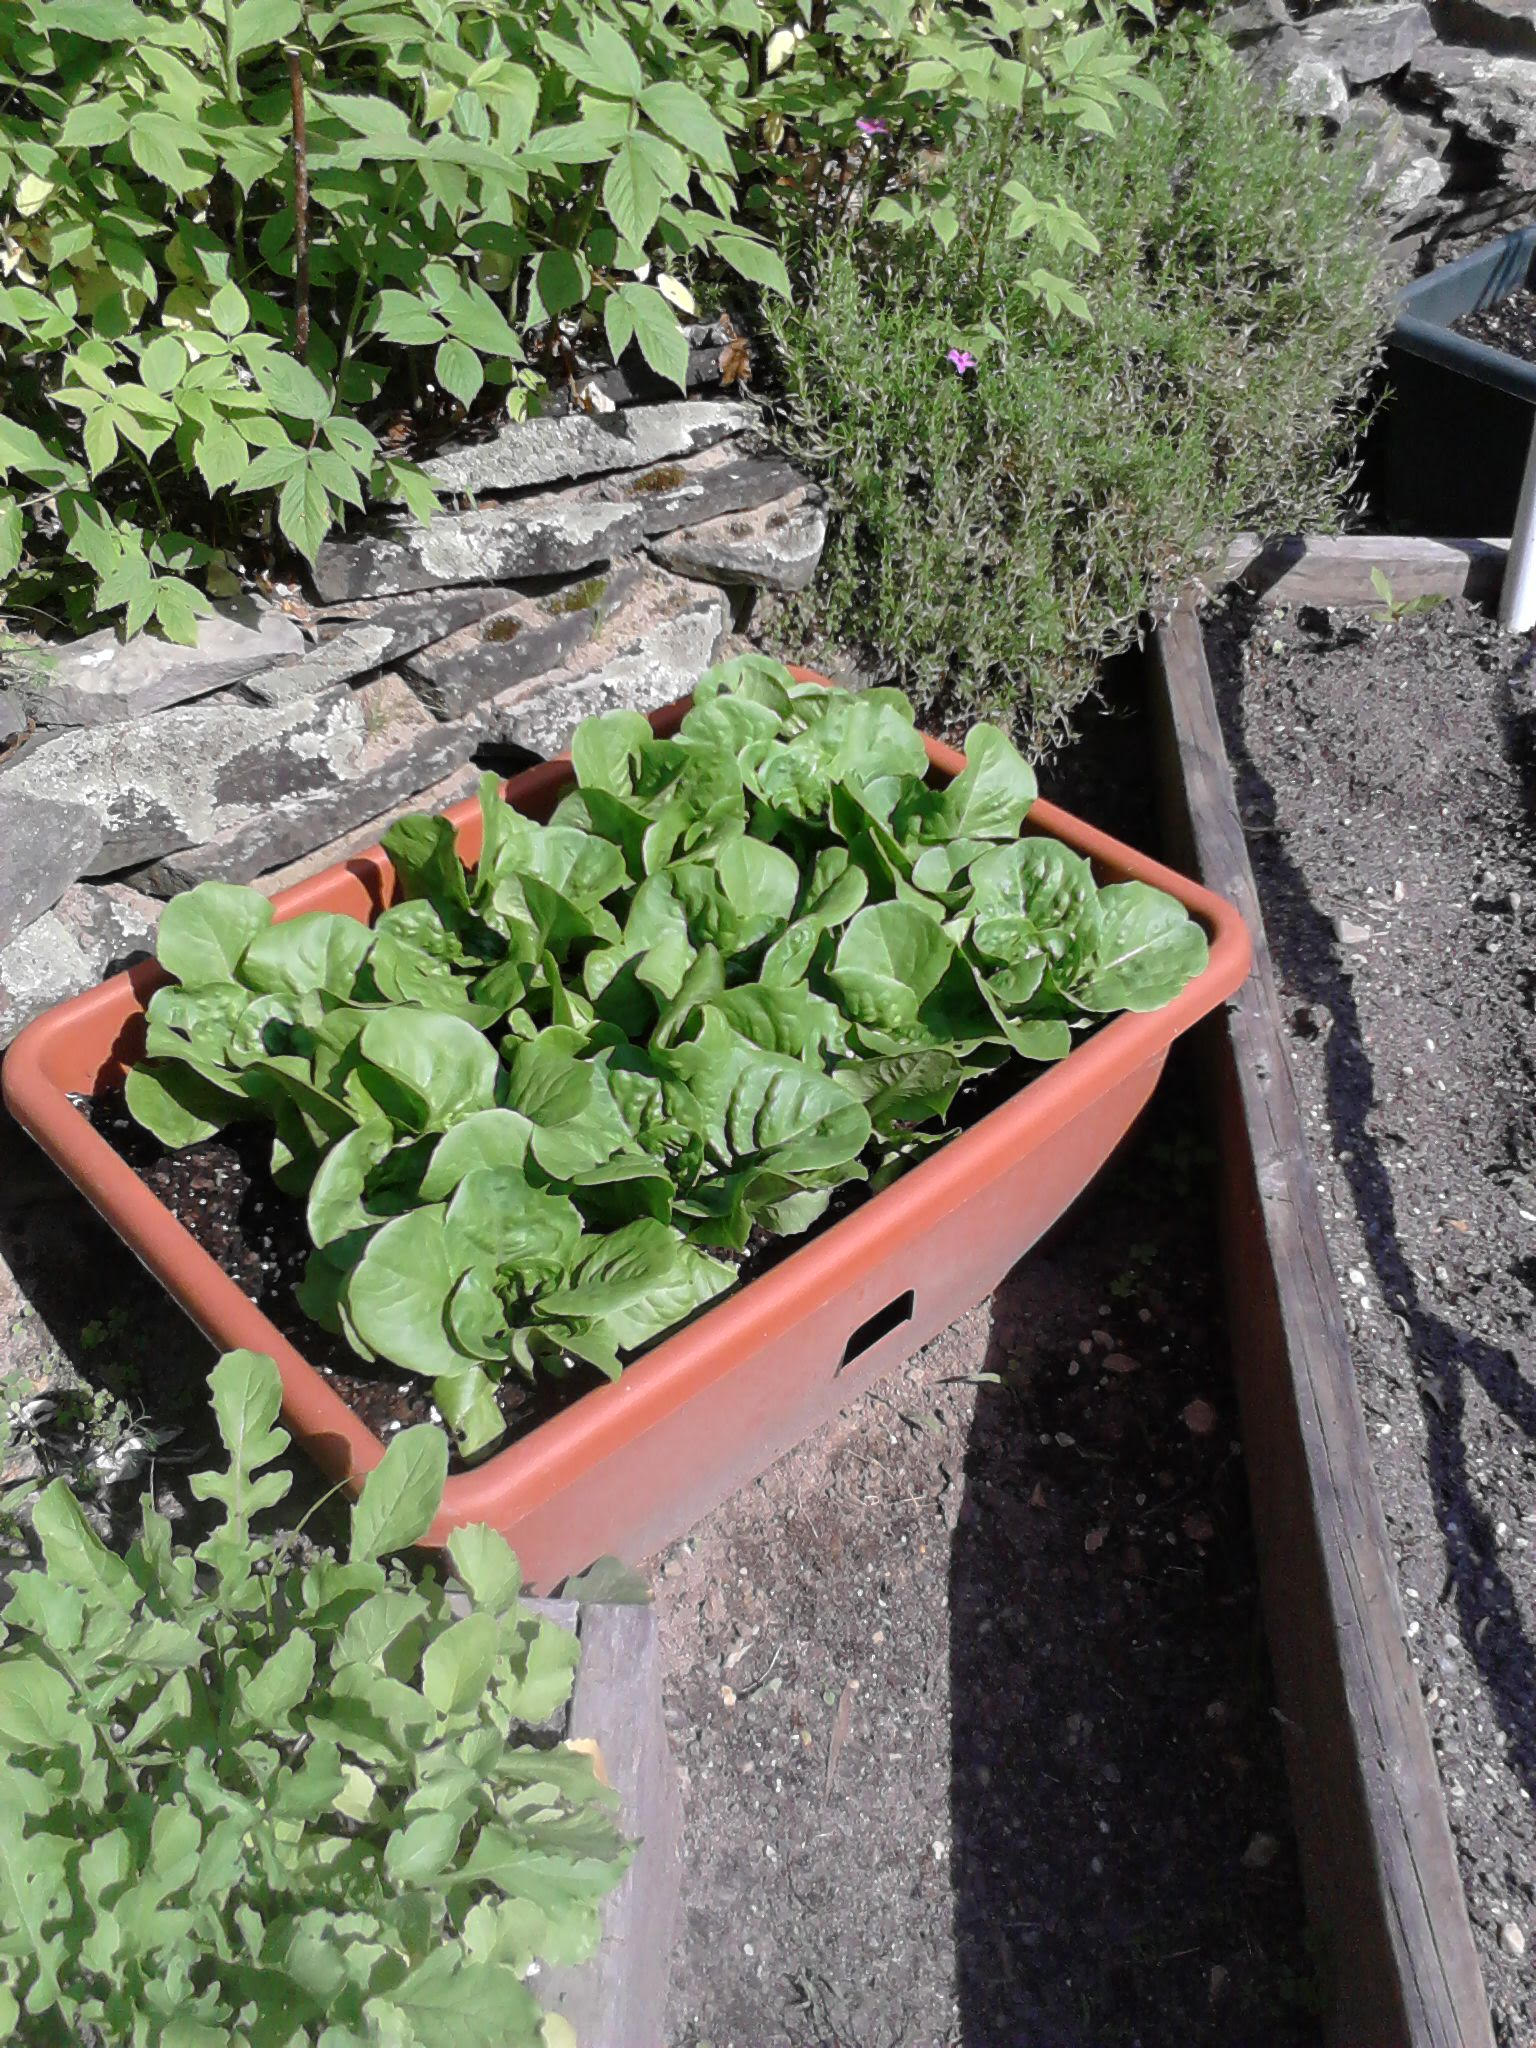 Bib lettuce in an outside container.